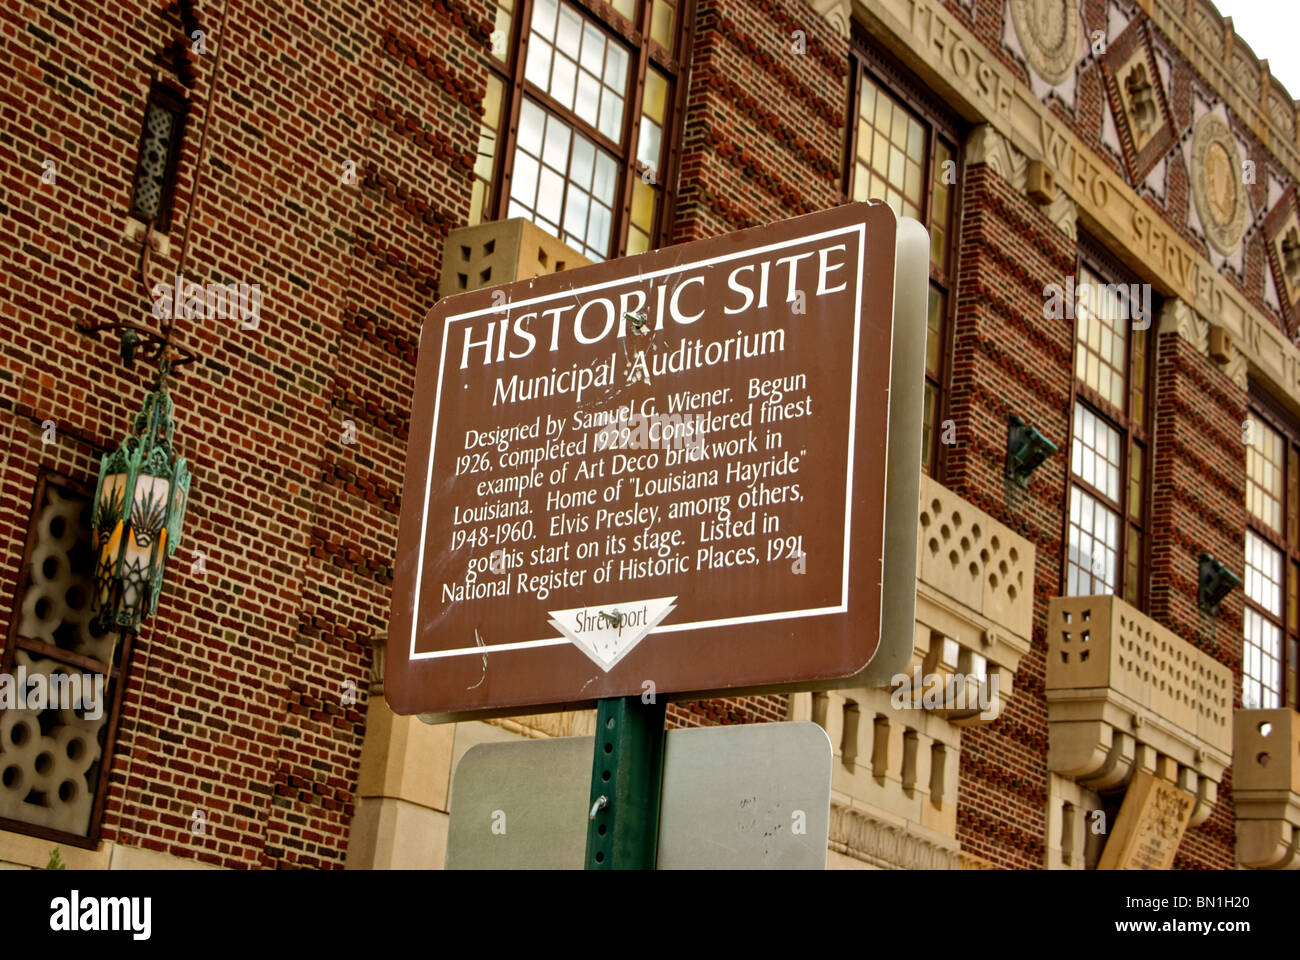 Historic site sign in front of the stunning brick art deco design